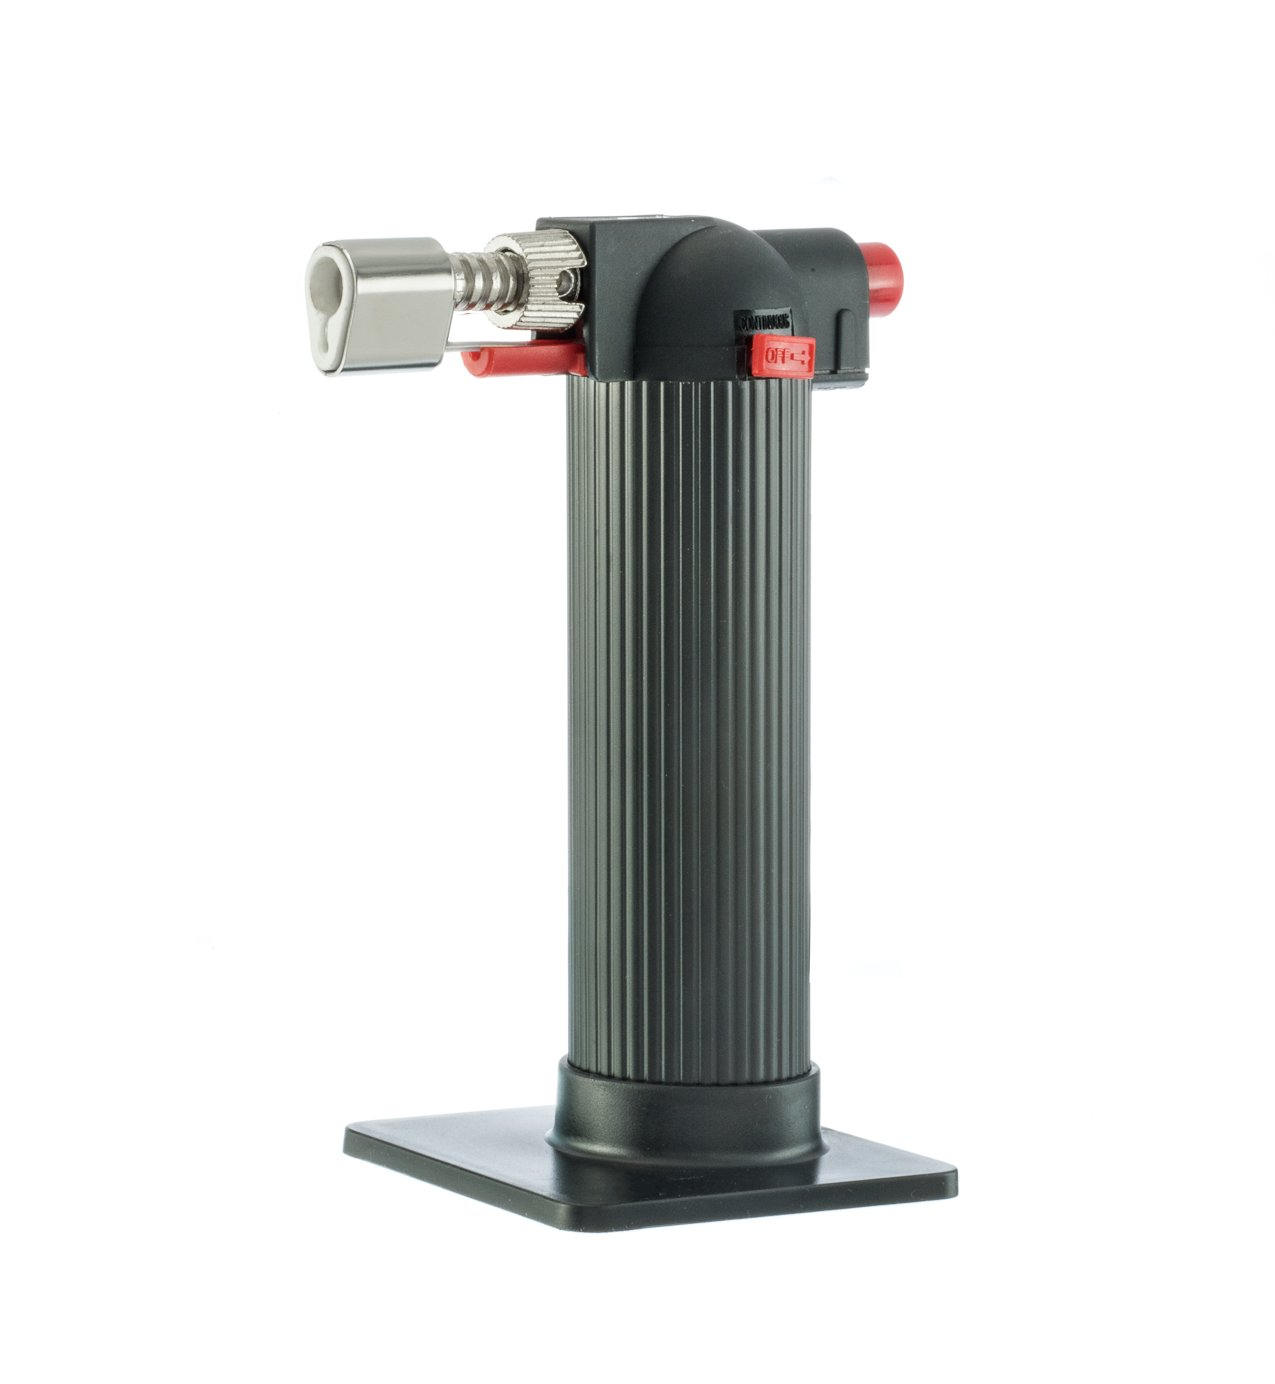 SE MT3001 Deluxe Butane Power Torch with Built-In Ignition System